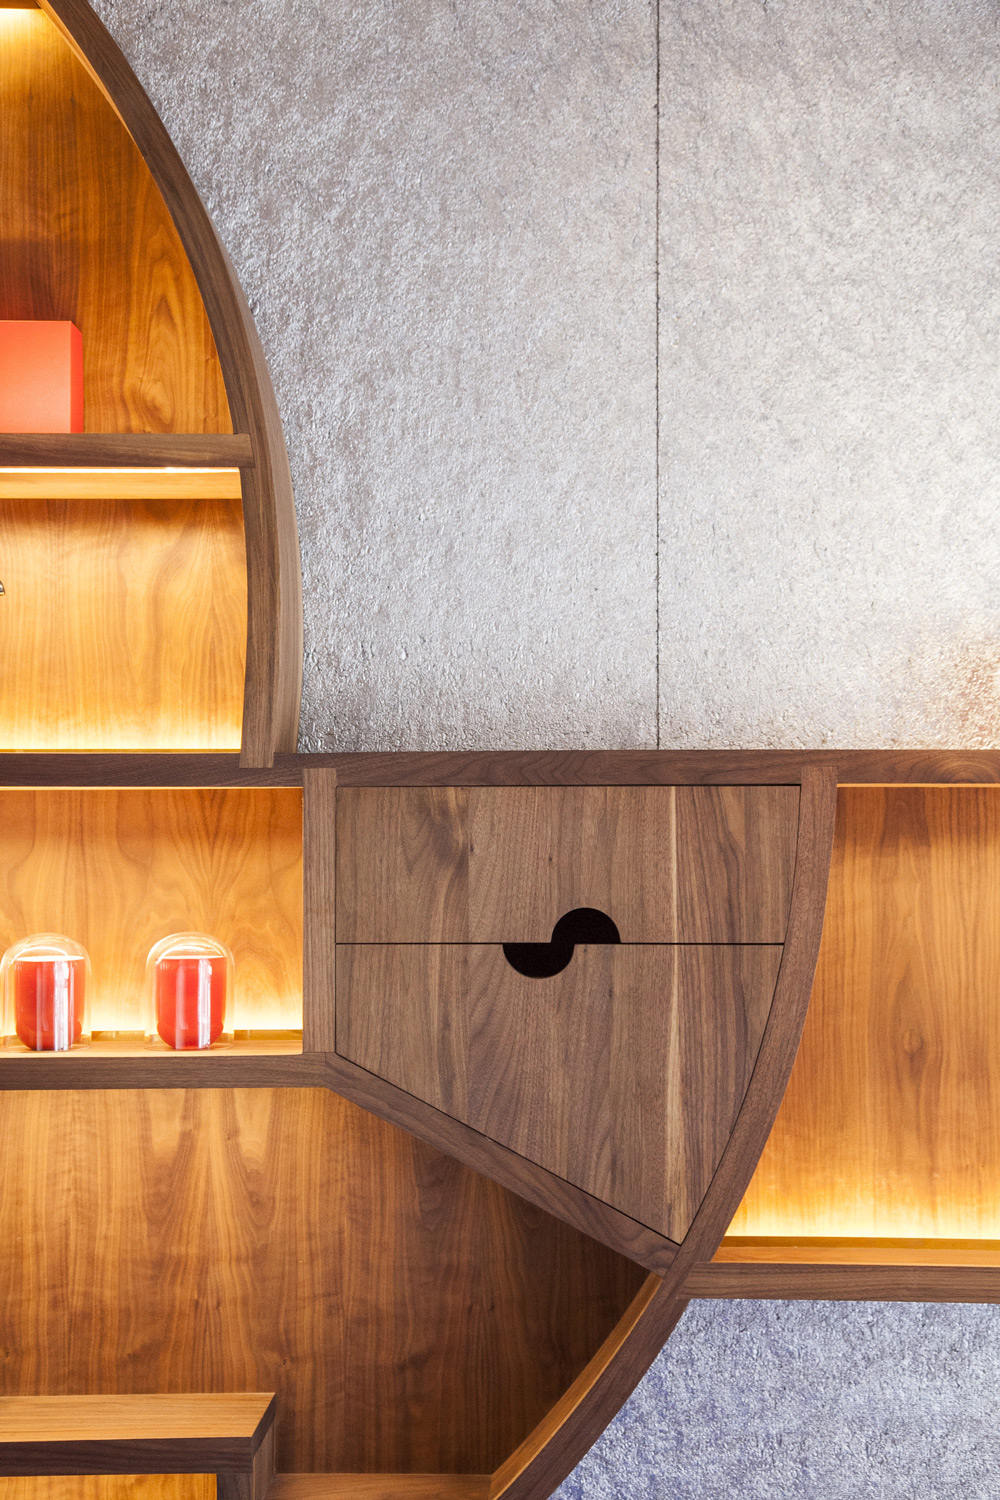 Frederic Malle / Steven Holl Architects (17)